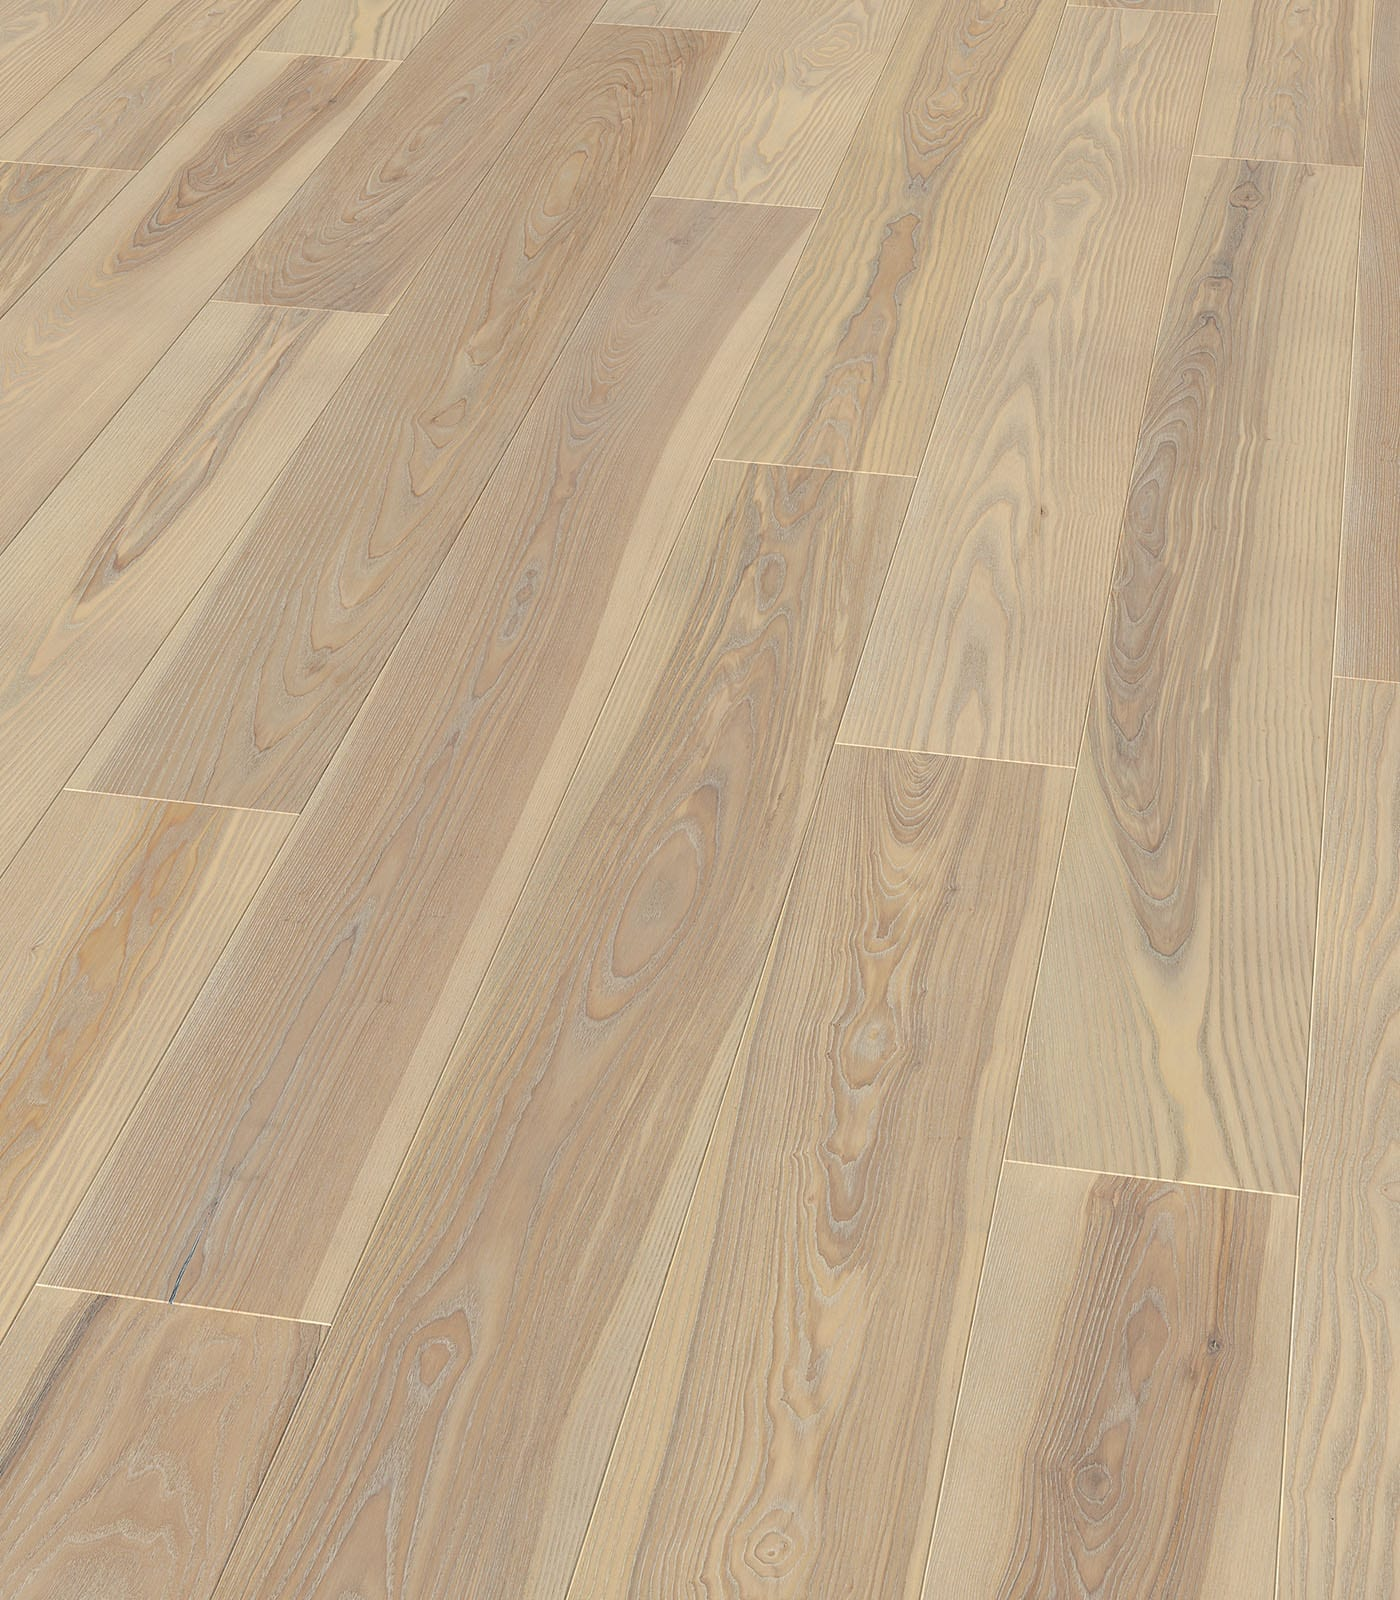 Munich-After Oak Collection-European Ash Floors - angle